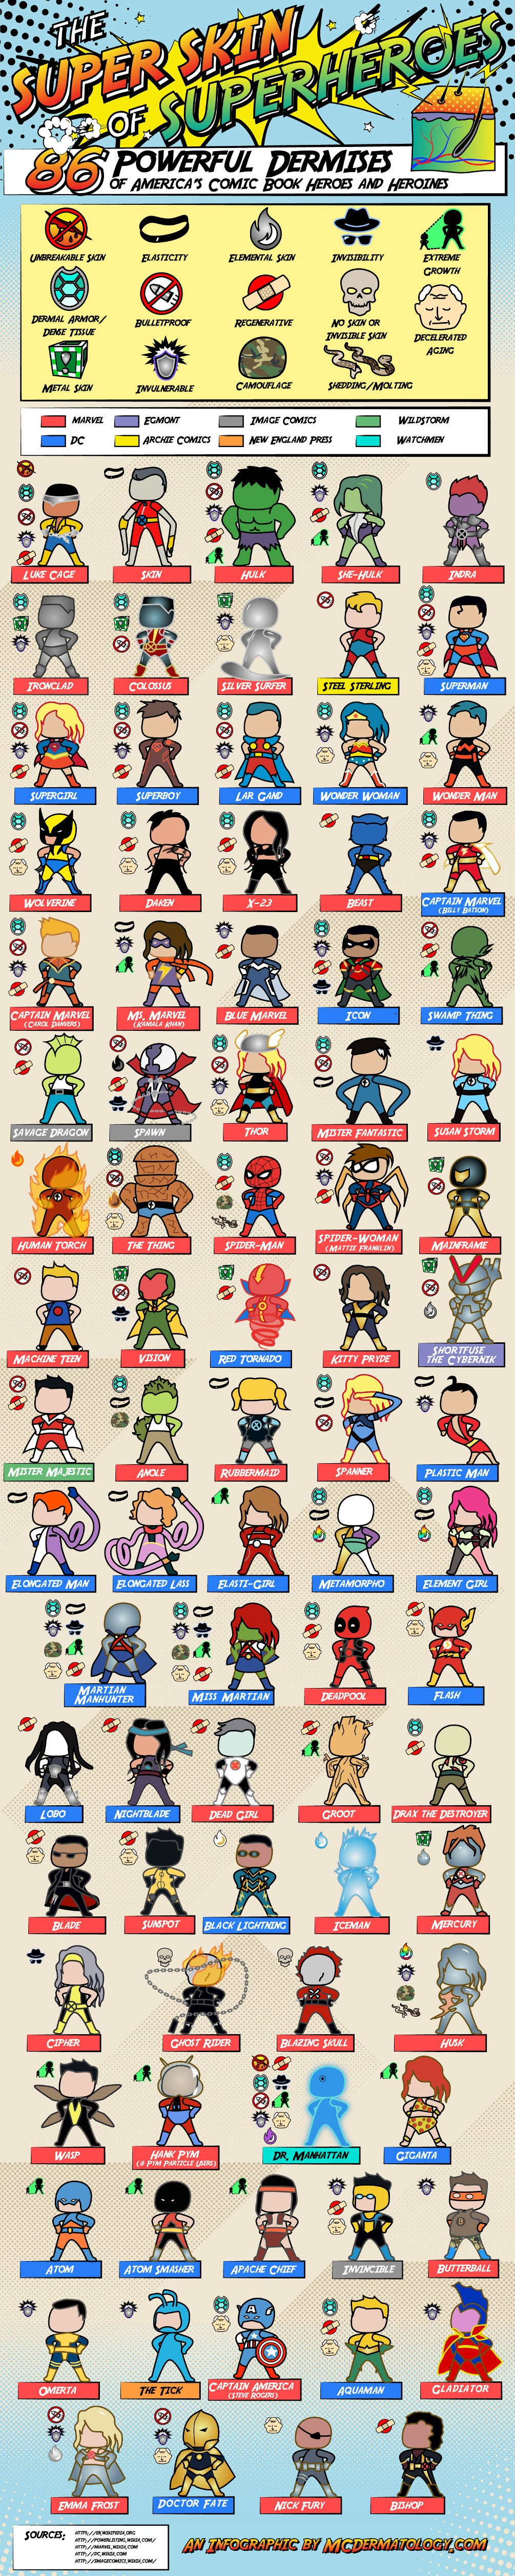 The Super Skin of Superheroes infographic